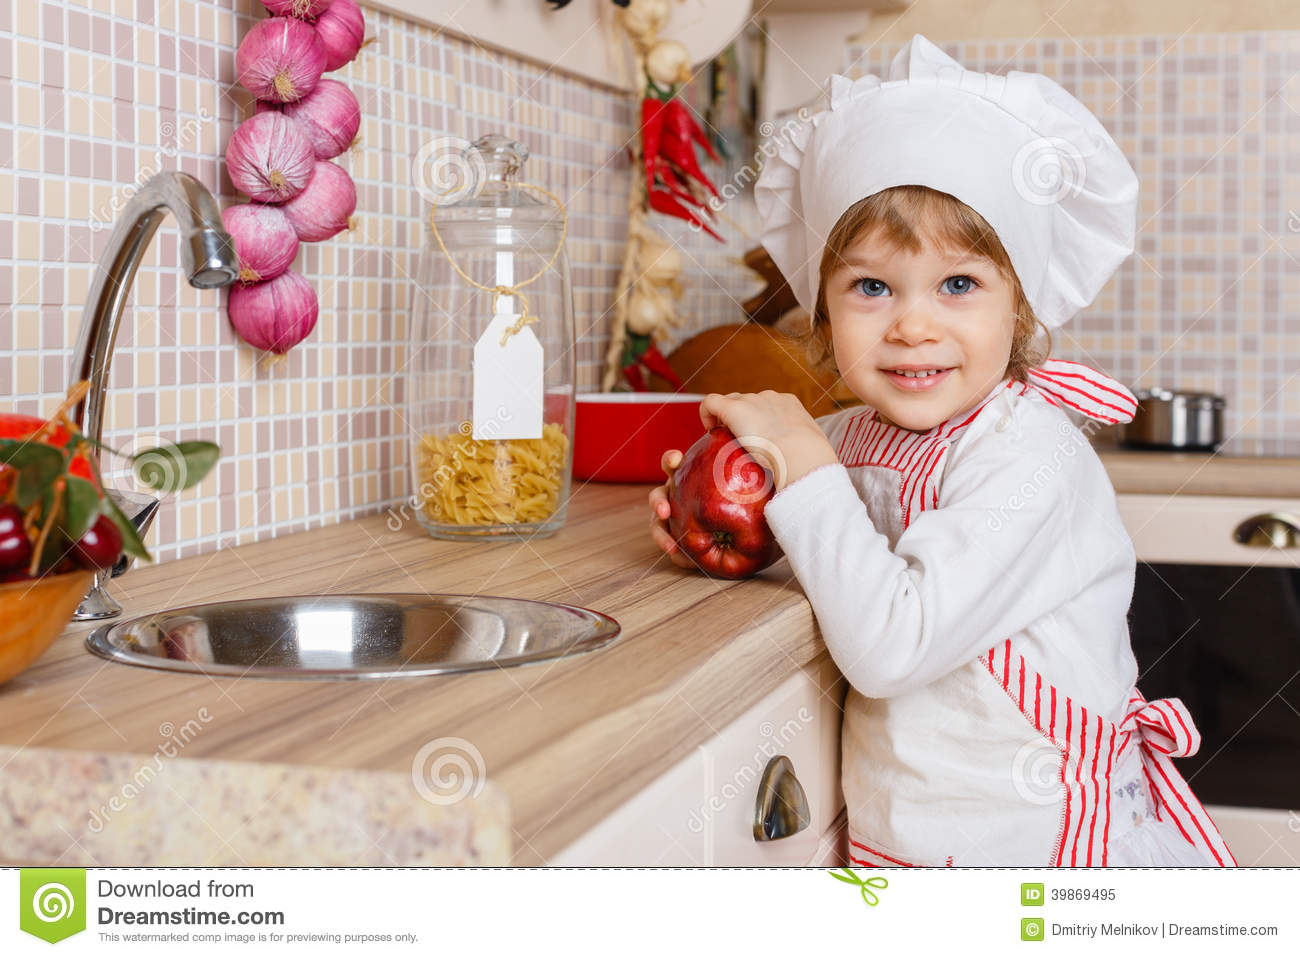 Little Girl In Apron In The Kitchen. Stock Image - Image: 39869495